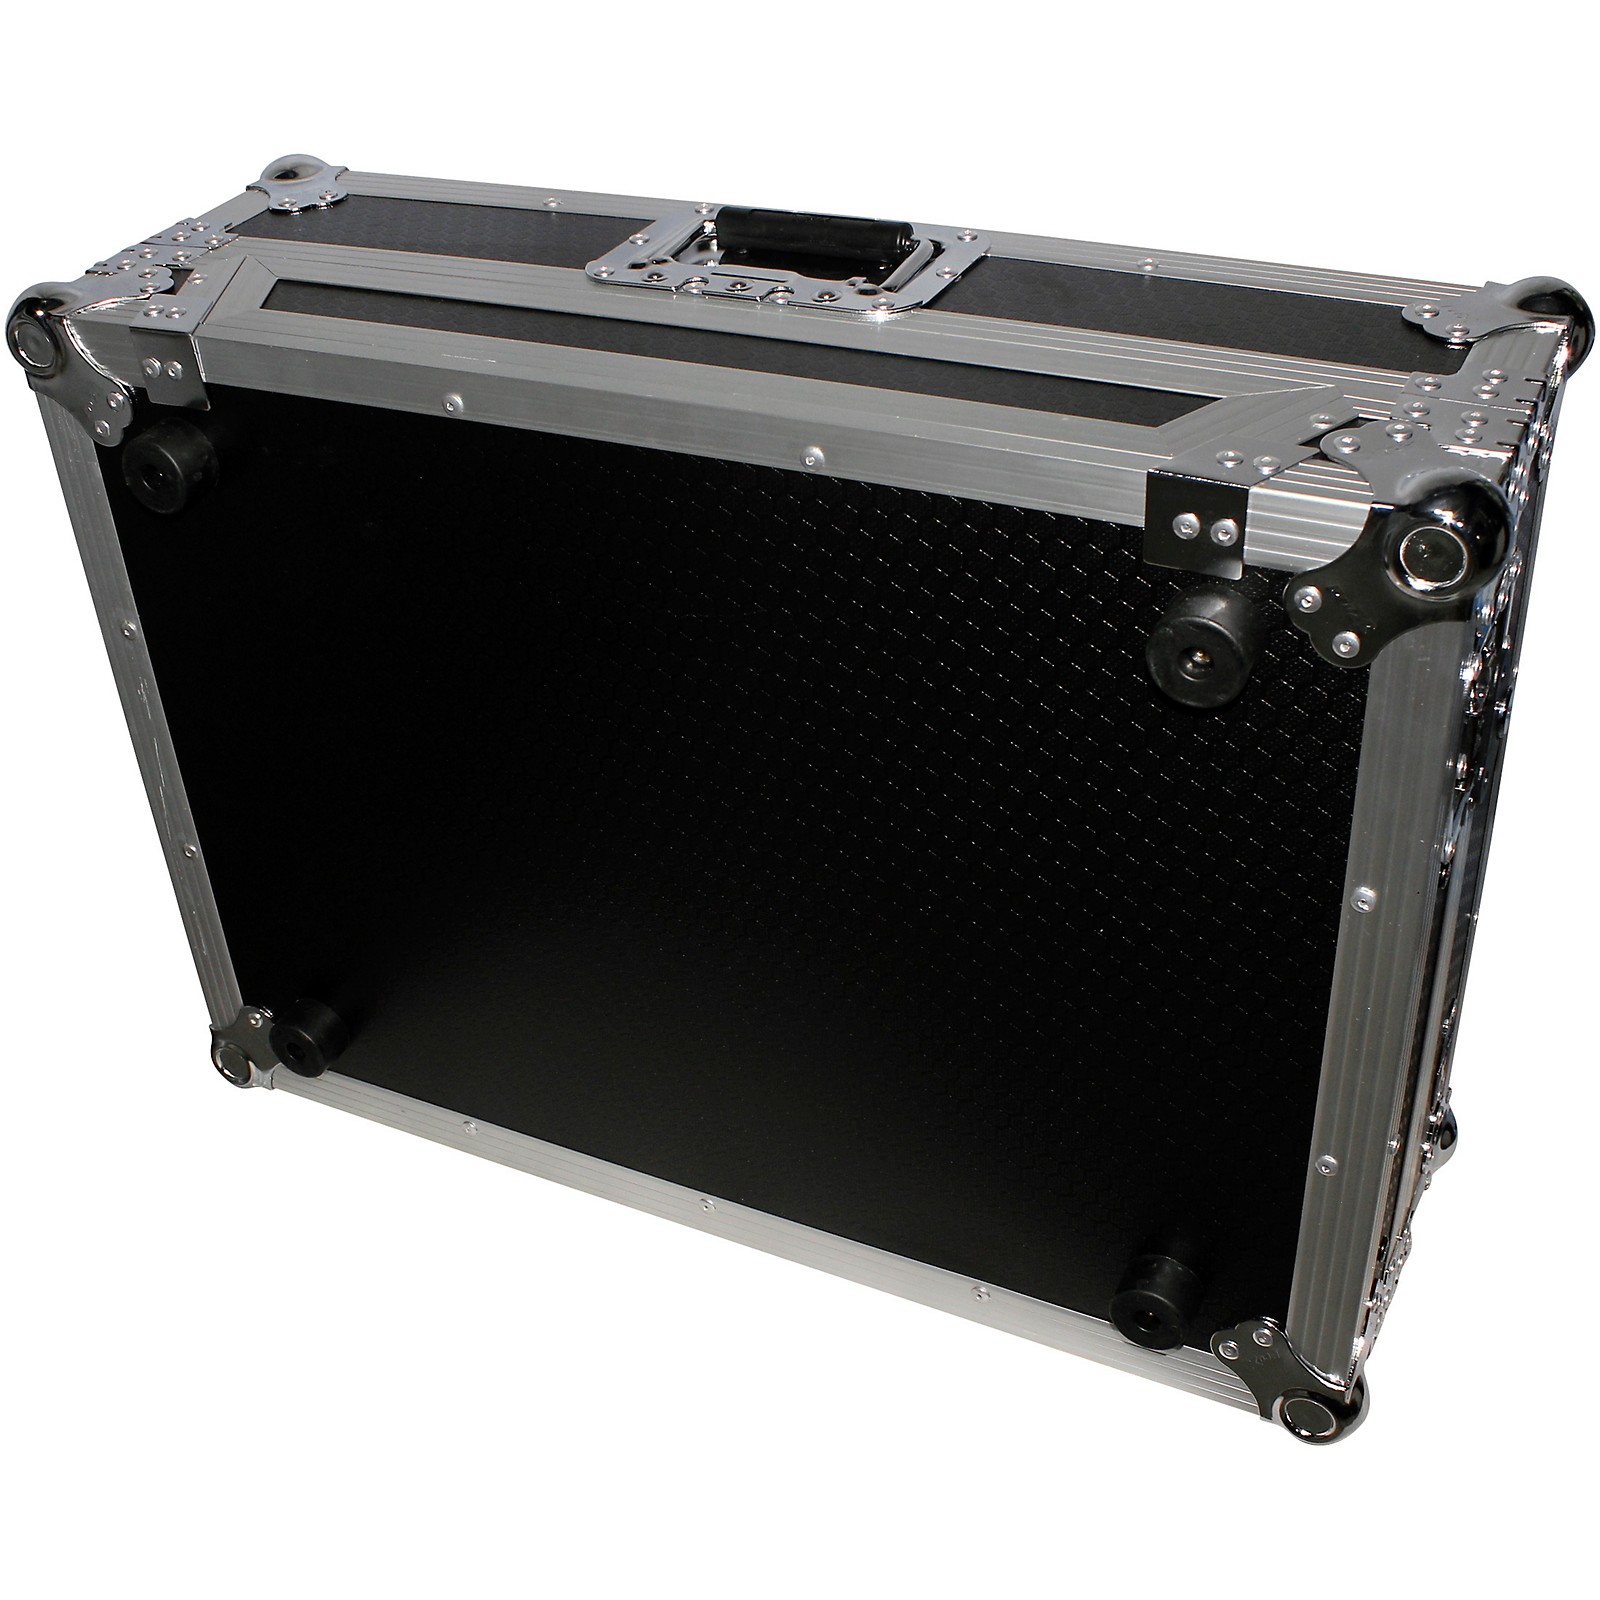 ProX XS-DDJSRLT ATA Style Flight Road Case for Pioneer DDJ-SR Controller With Sliding Shelf